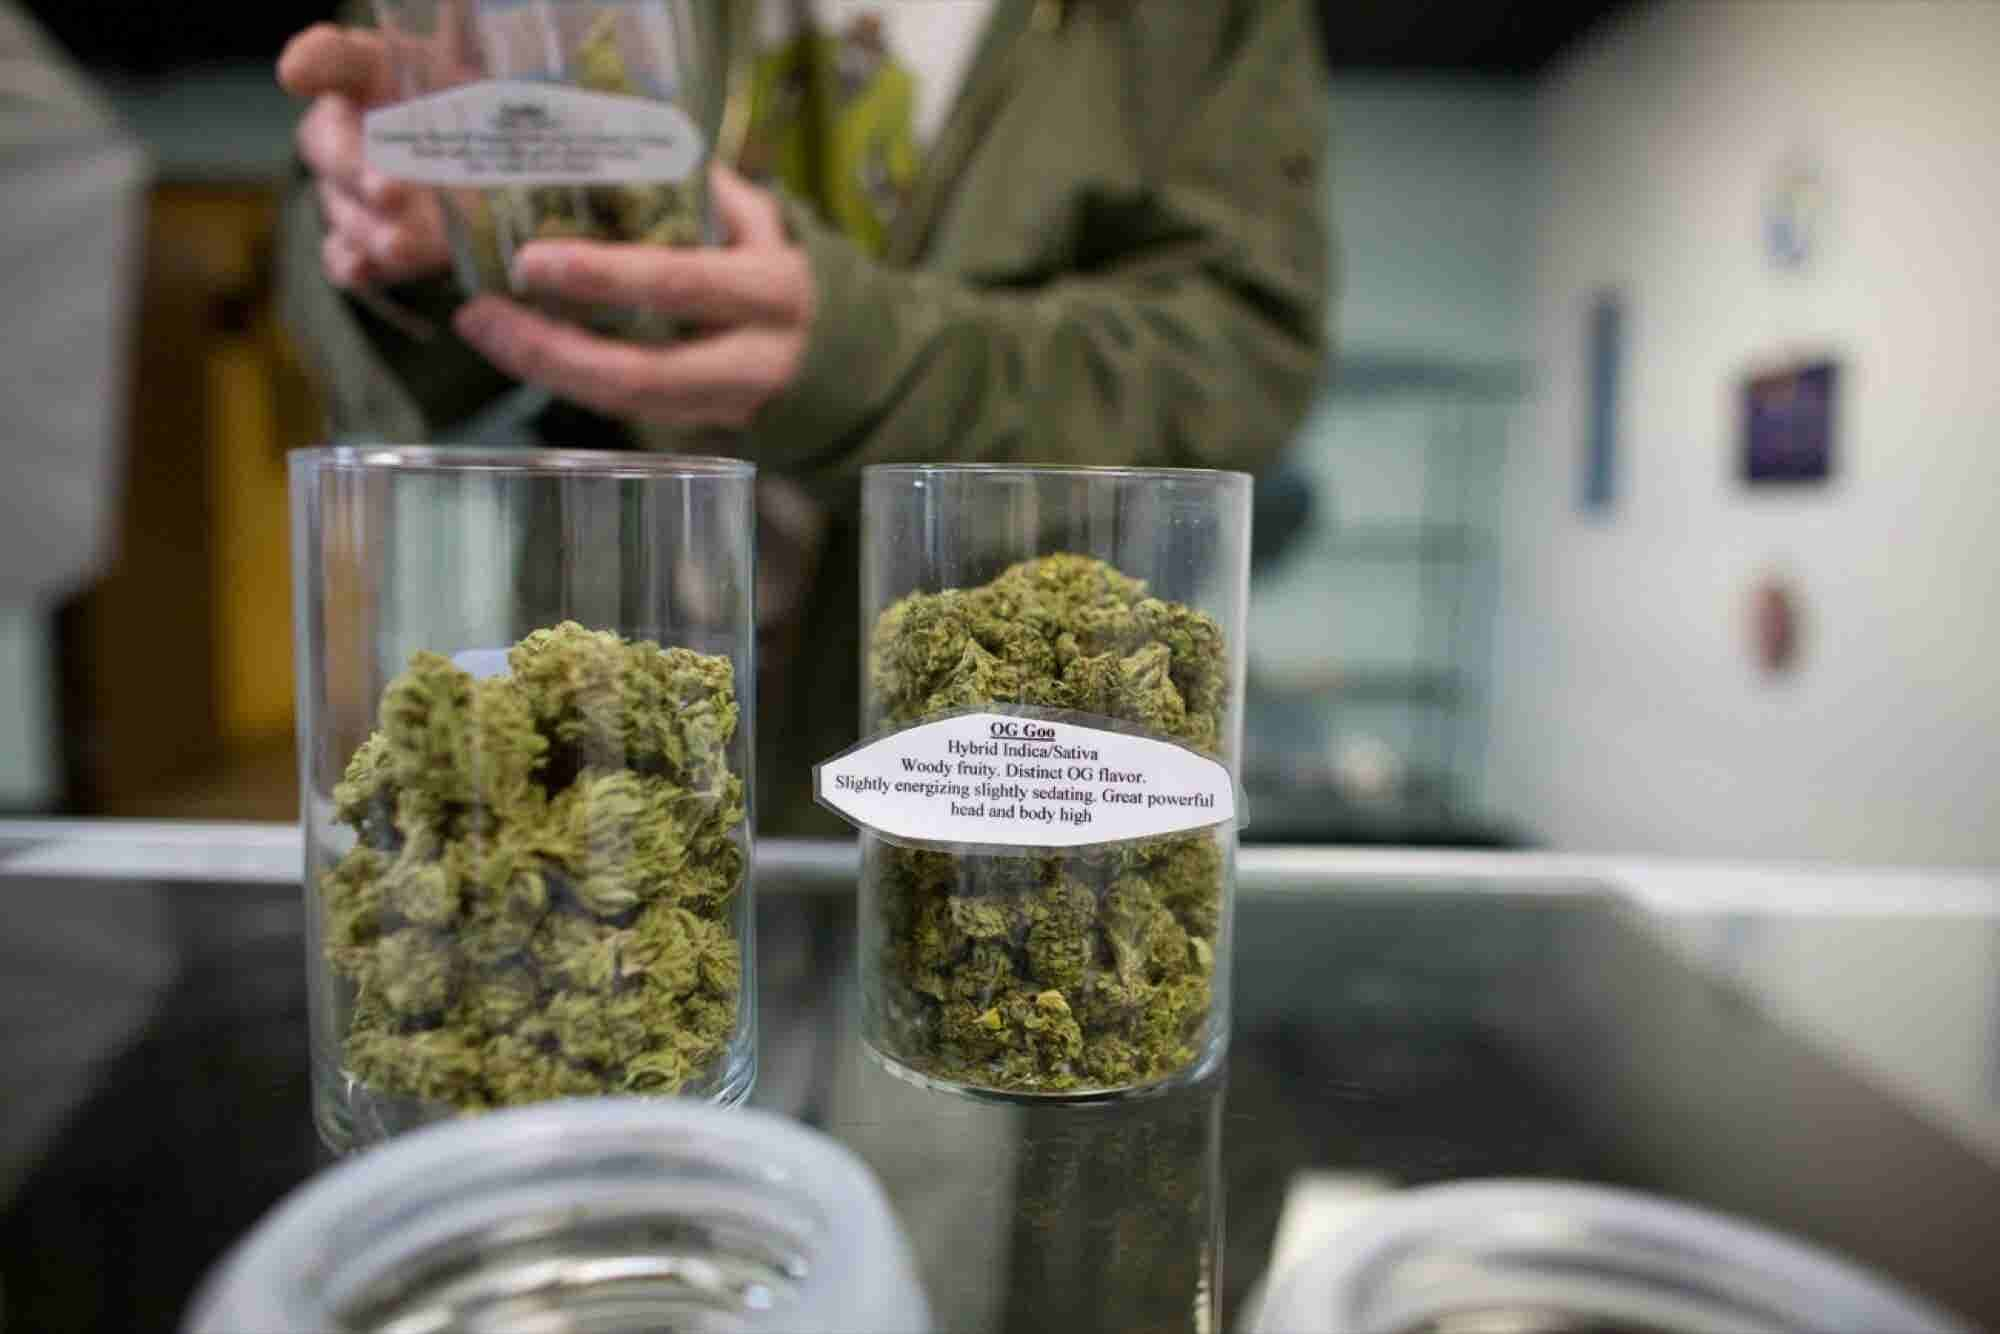 How Do We Measure the Statistical Significance of Legal Cannabis?